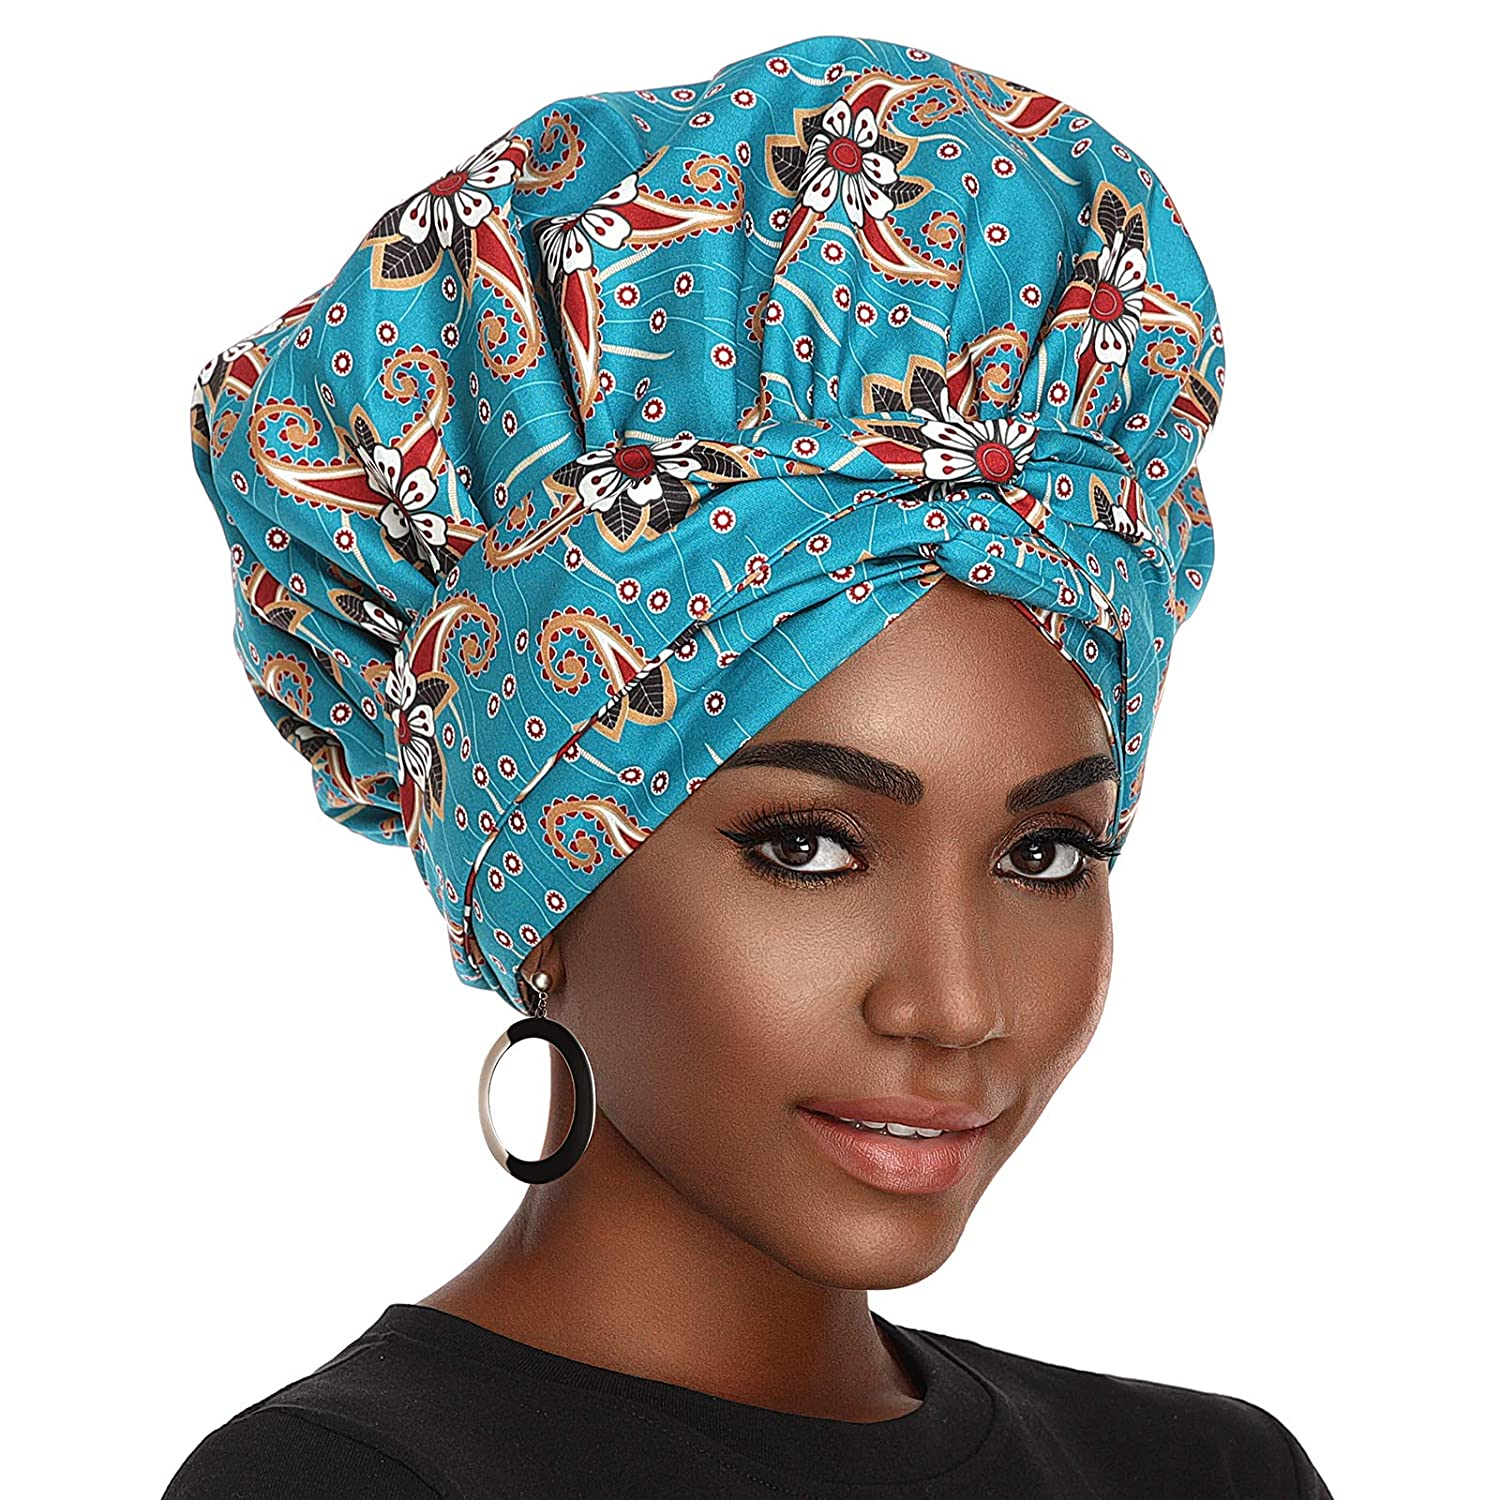 Satin Bonnet for Women, Silk Bonnet for Curly Hair Bonnet